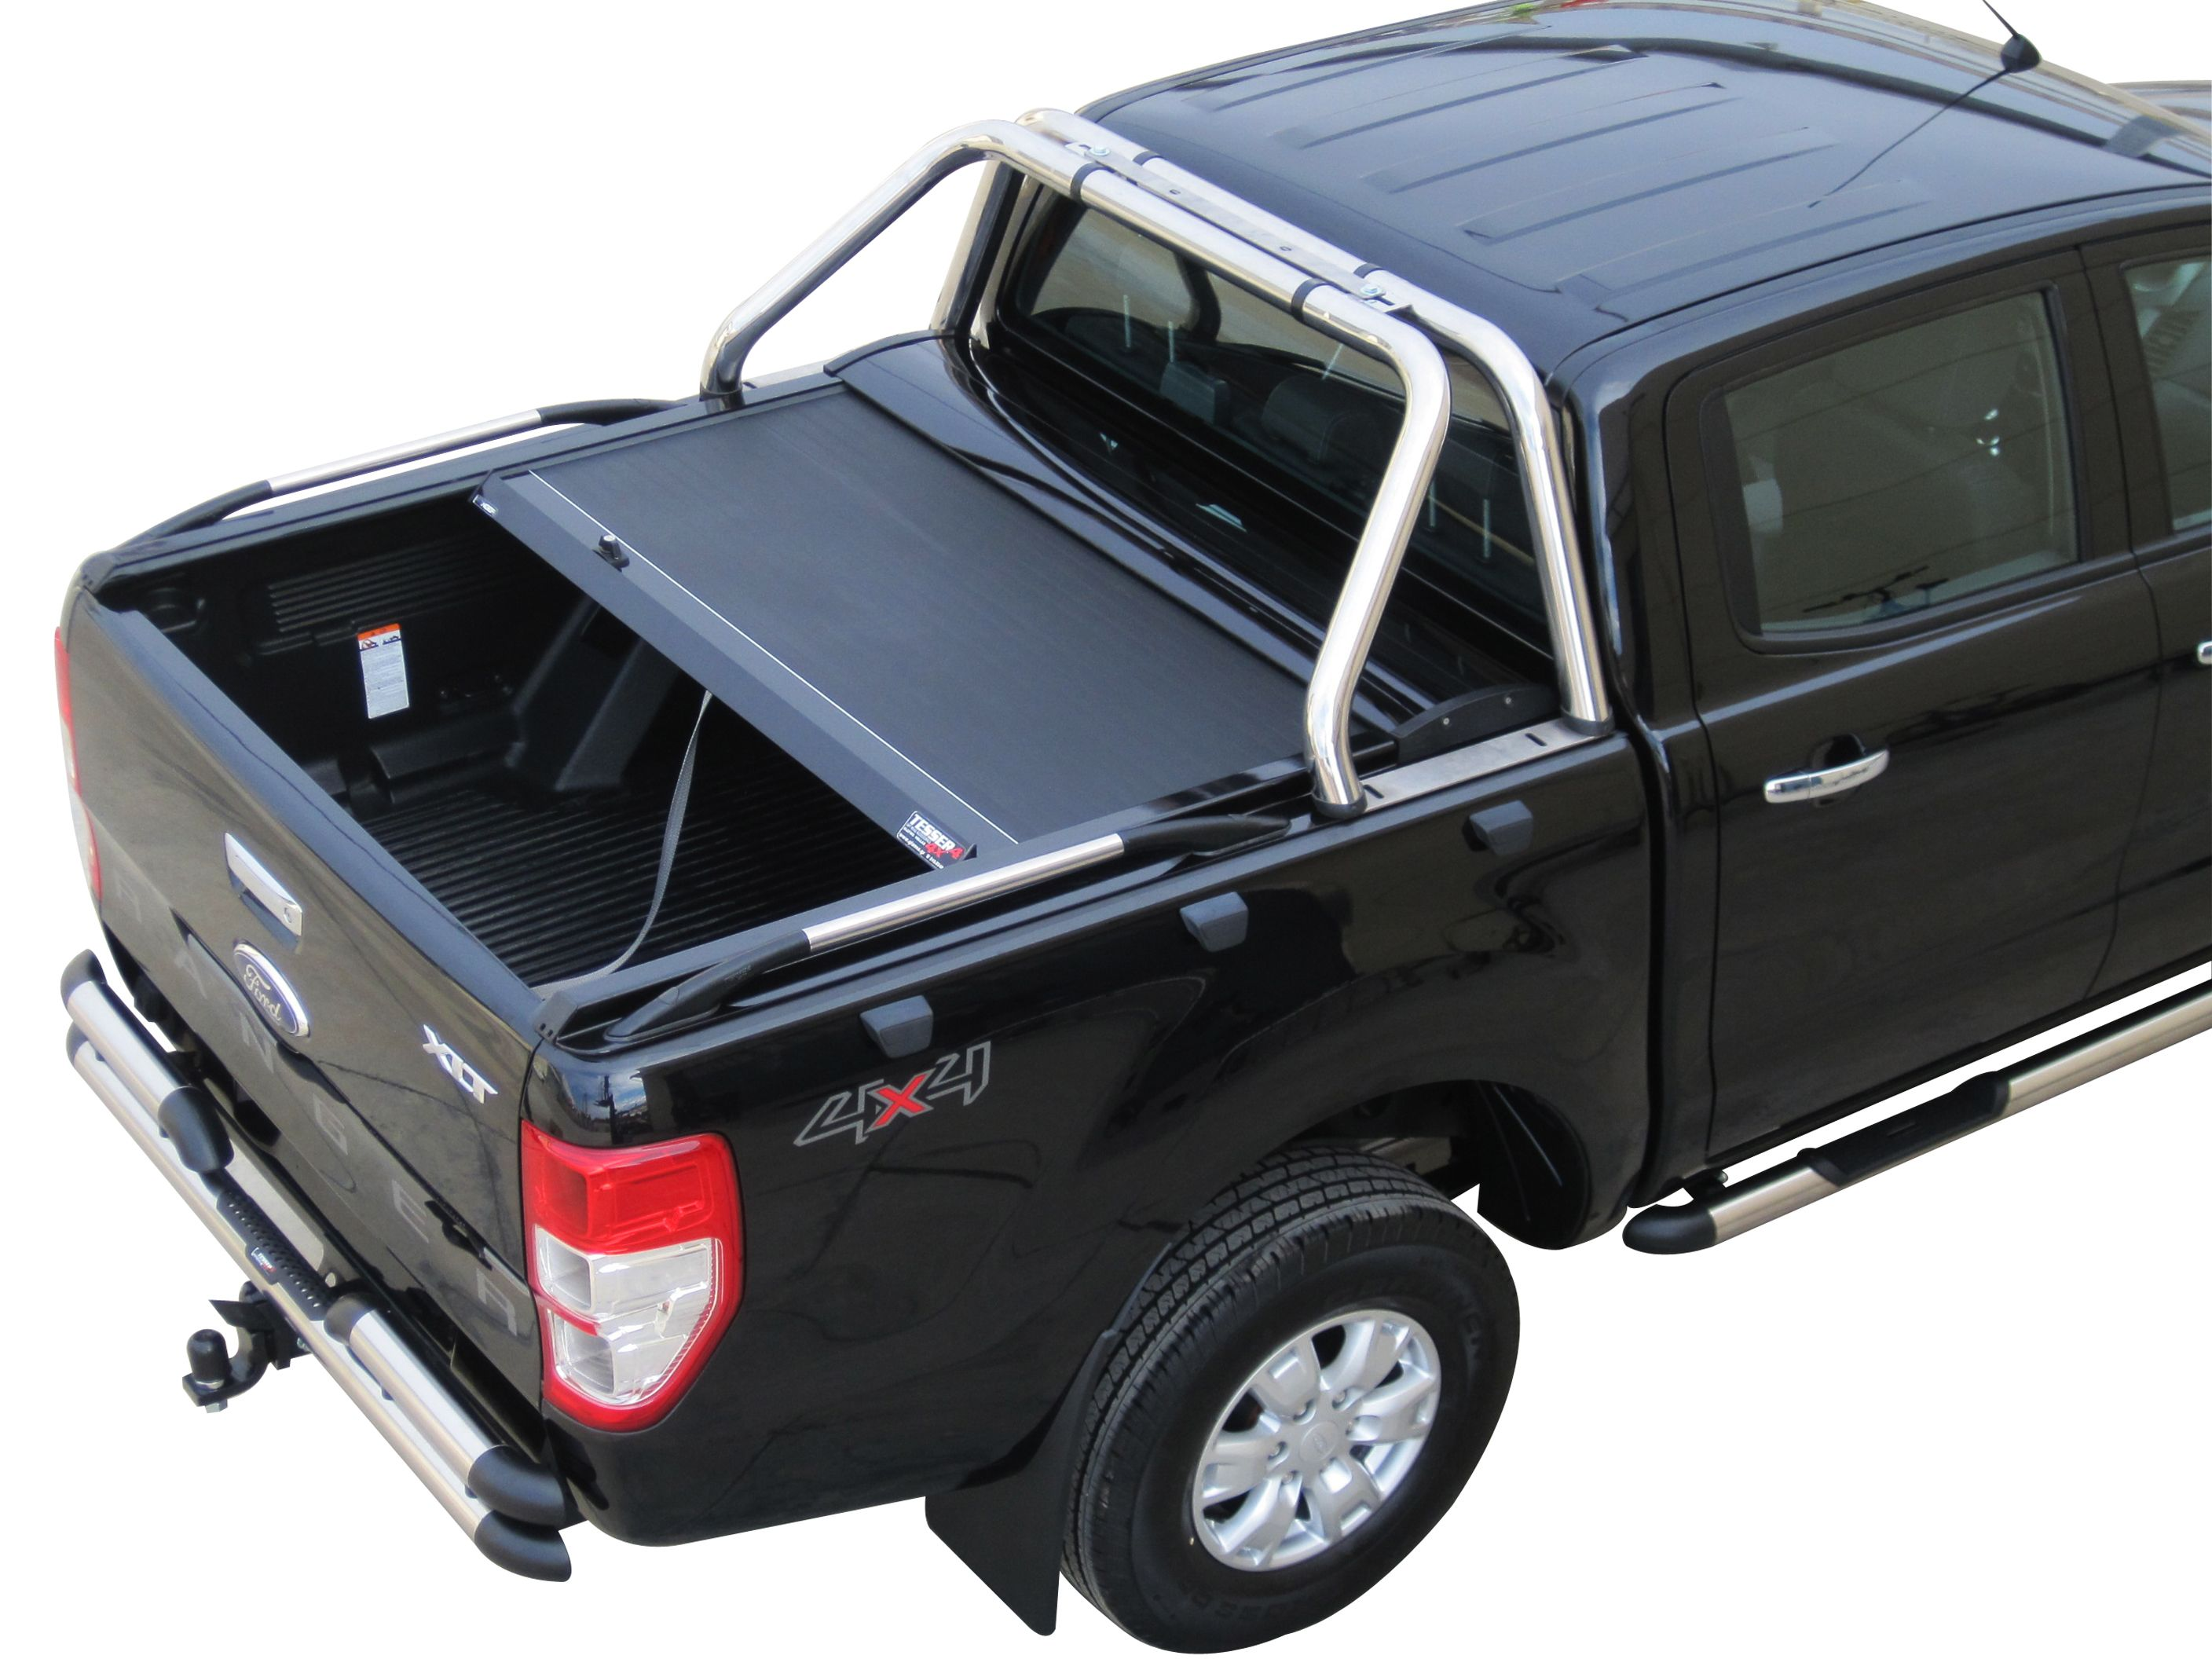 Ford Ranger T6 2012 On Tessera 4x4 Accessories Uk Ford Ranger 4x4 Accessories Ford Ranger Wildtrak